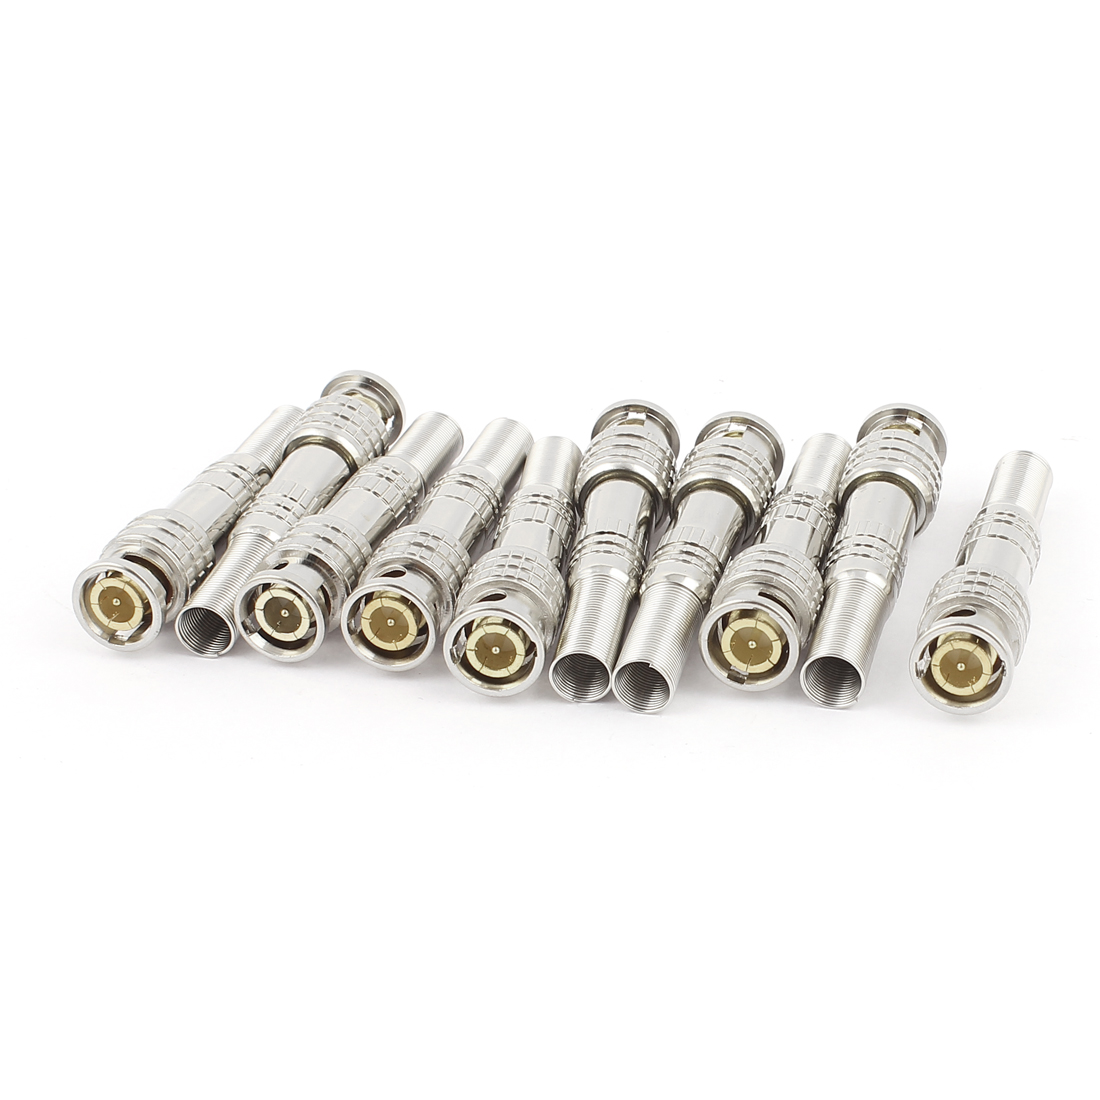 10pcs Spring End Welding Video RF BNC Male Plug Connector Adapter for Coaxial Cable